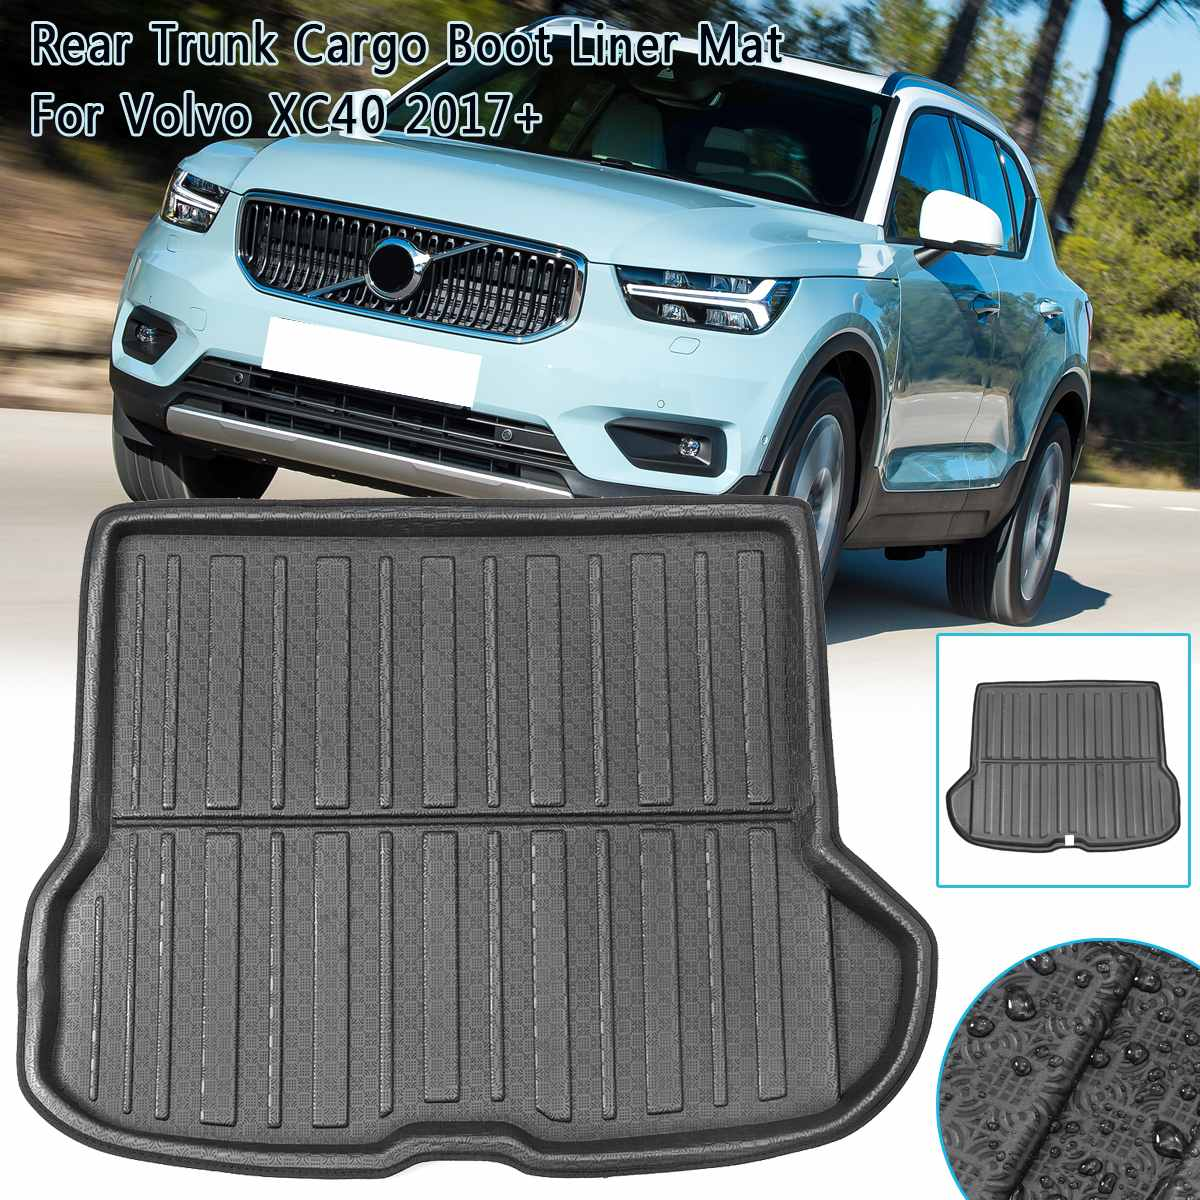 Car Boot Liner Tray For Volvo XC40 2017 2018 2019 Car Rear Trunk Cargo Mat Floor Sheet Carpet Mud Protector Waterproof 1Piece